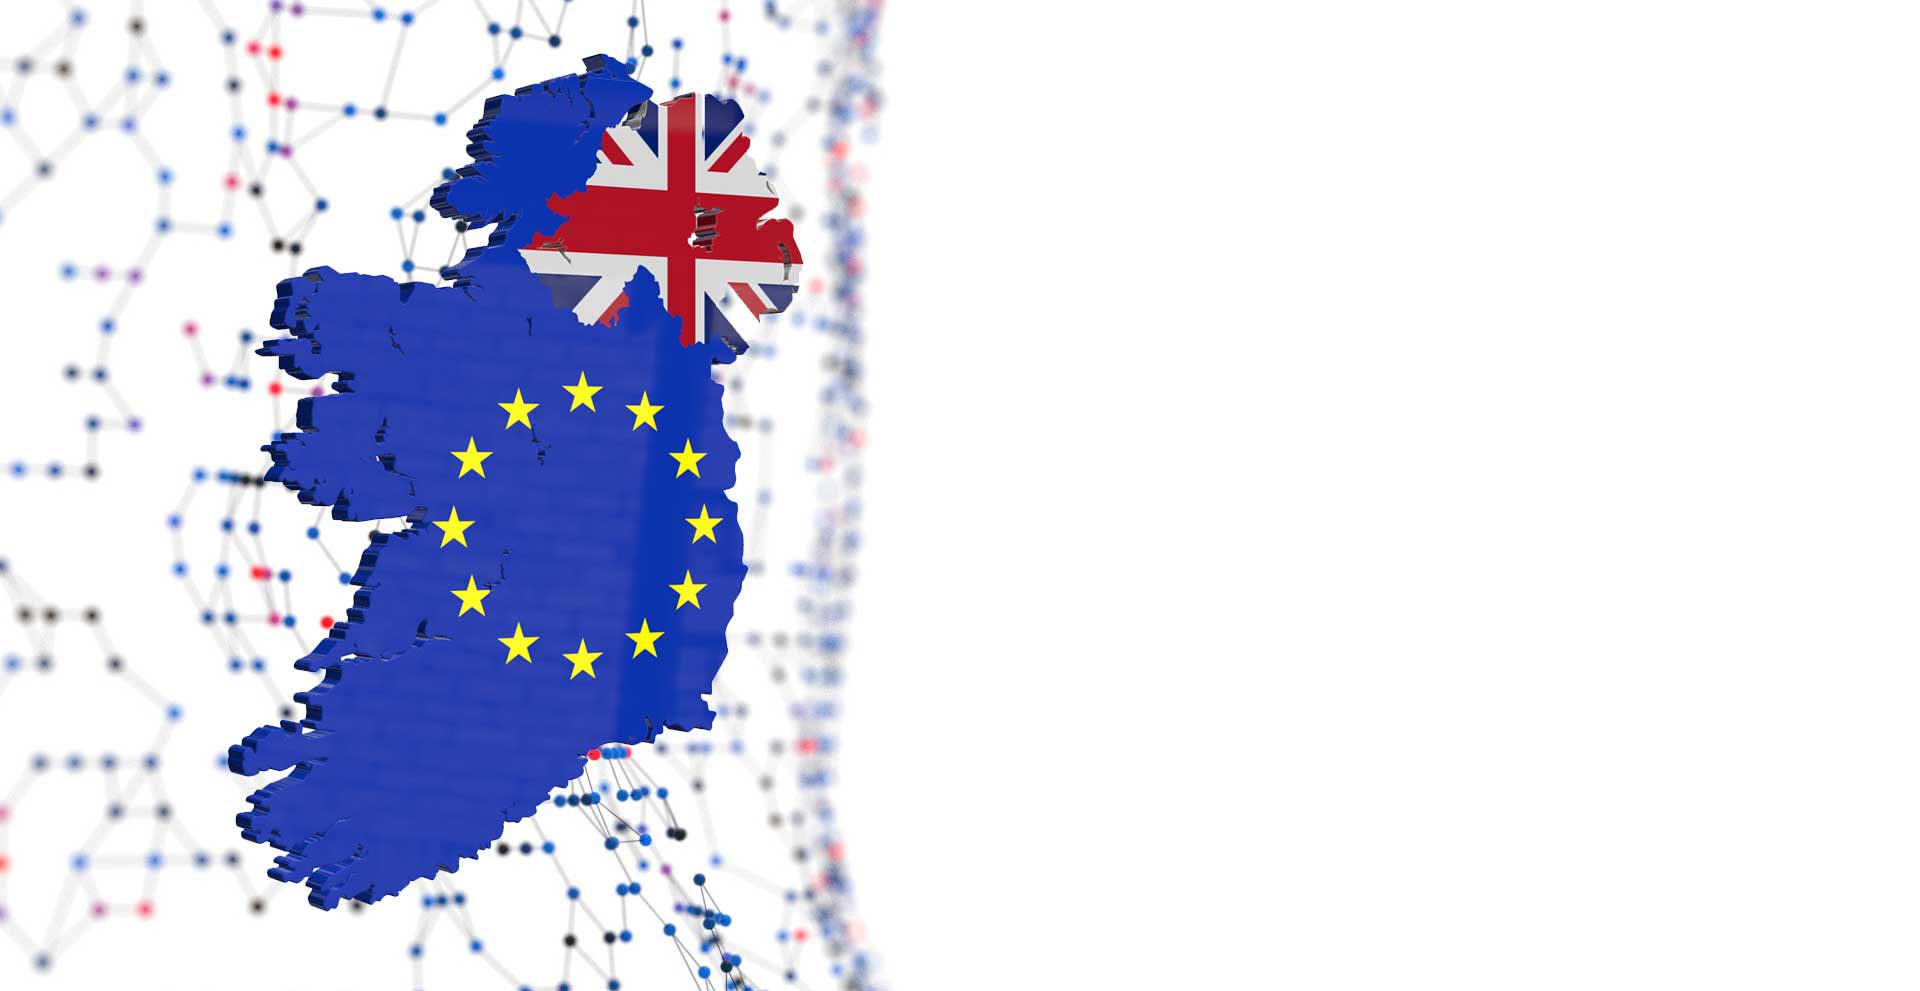 Regulations Post Brexit Impact on Pharma and LifeSciences - Northern Ireland Background